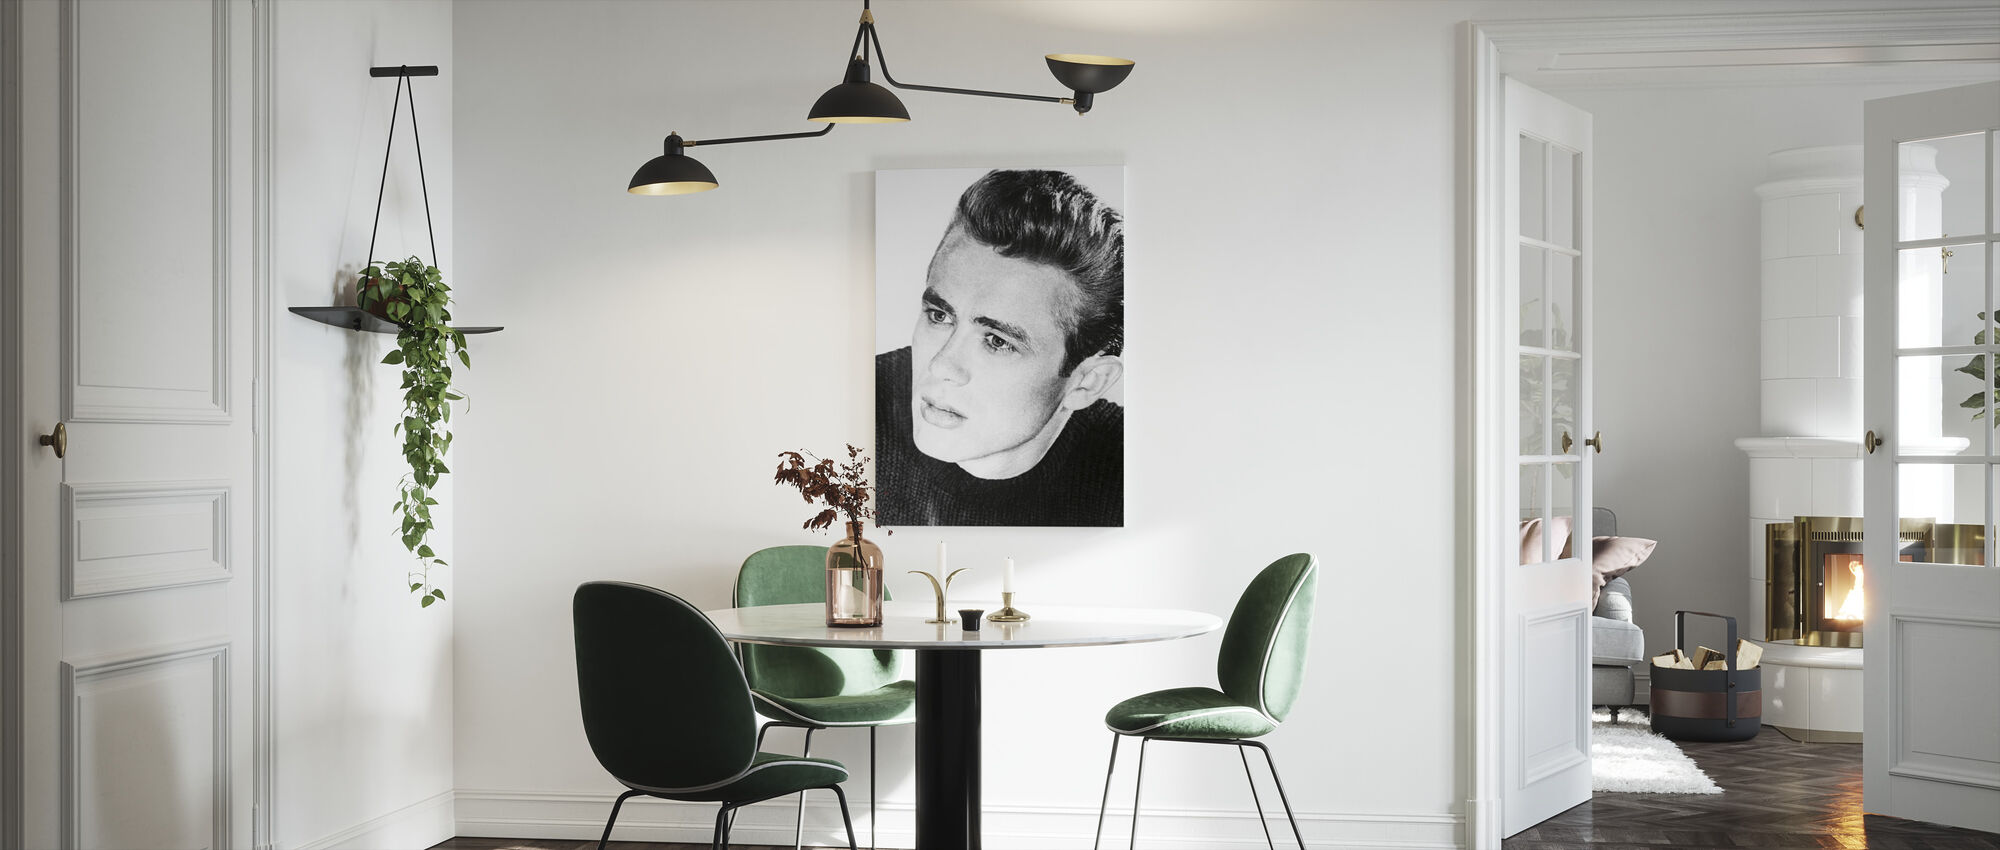 James Dean in Rebel Without a Cause - Canvas print - Kitchen